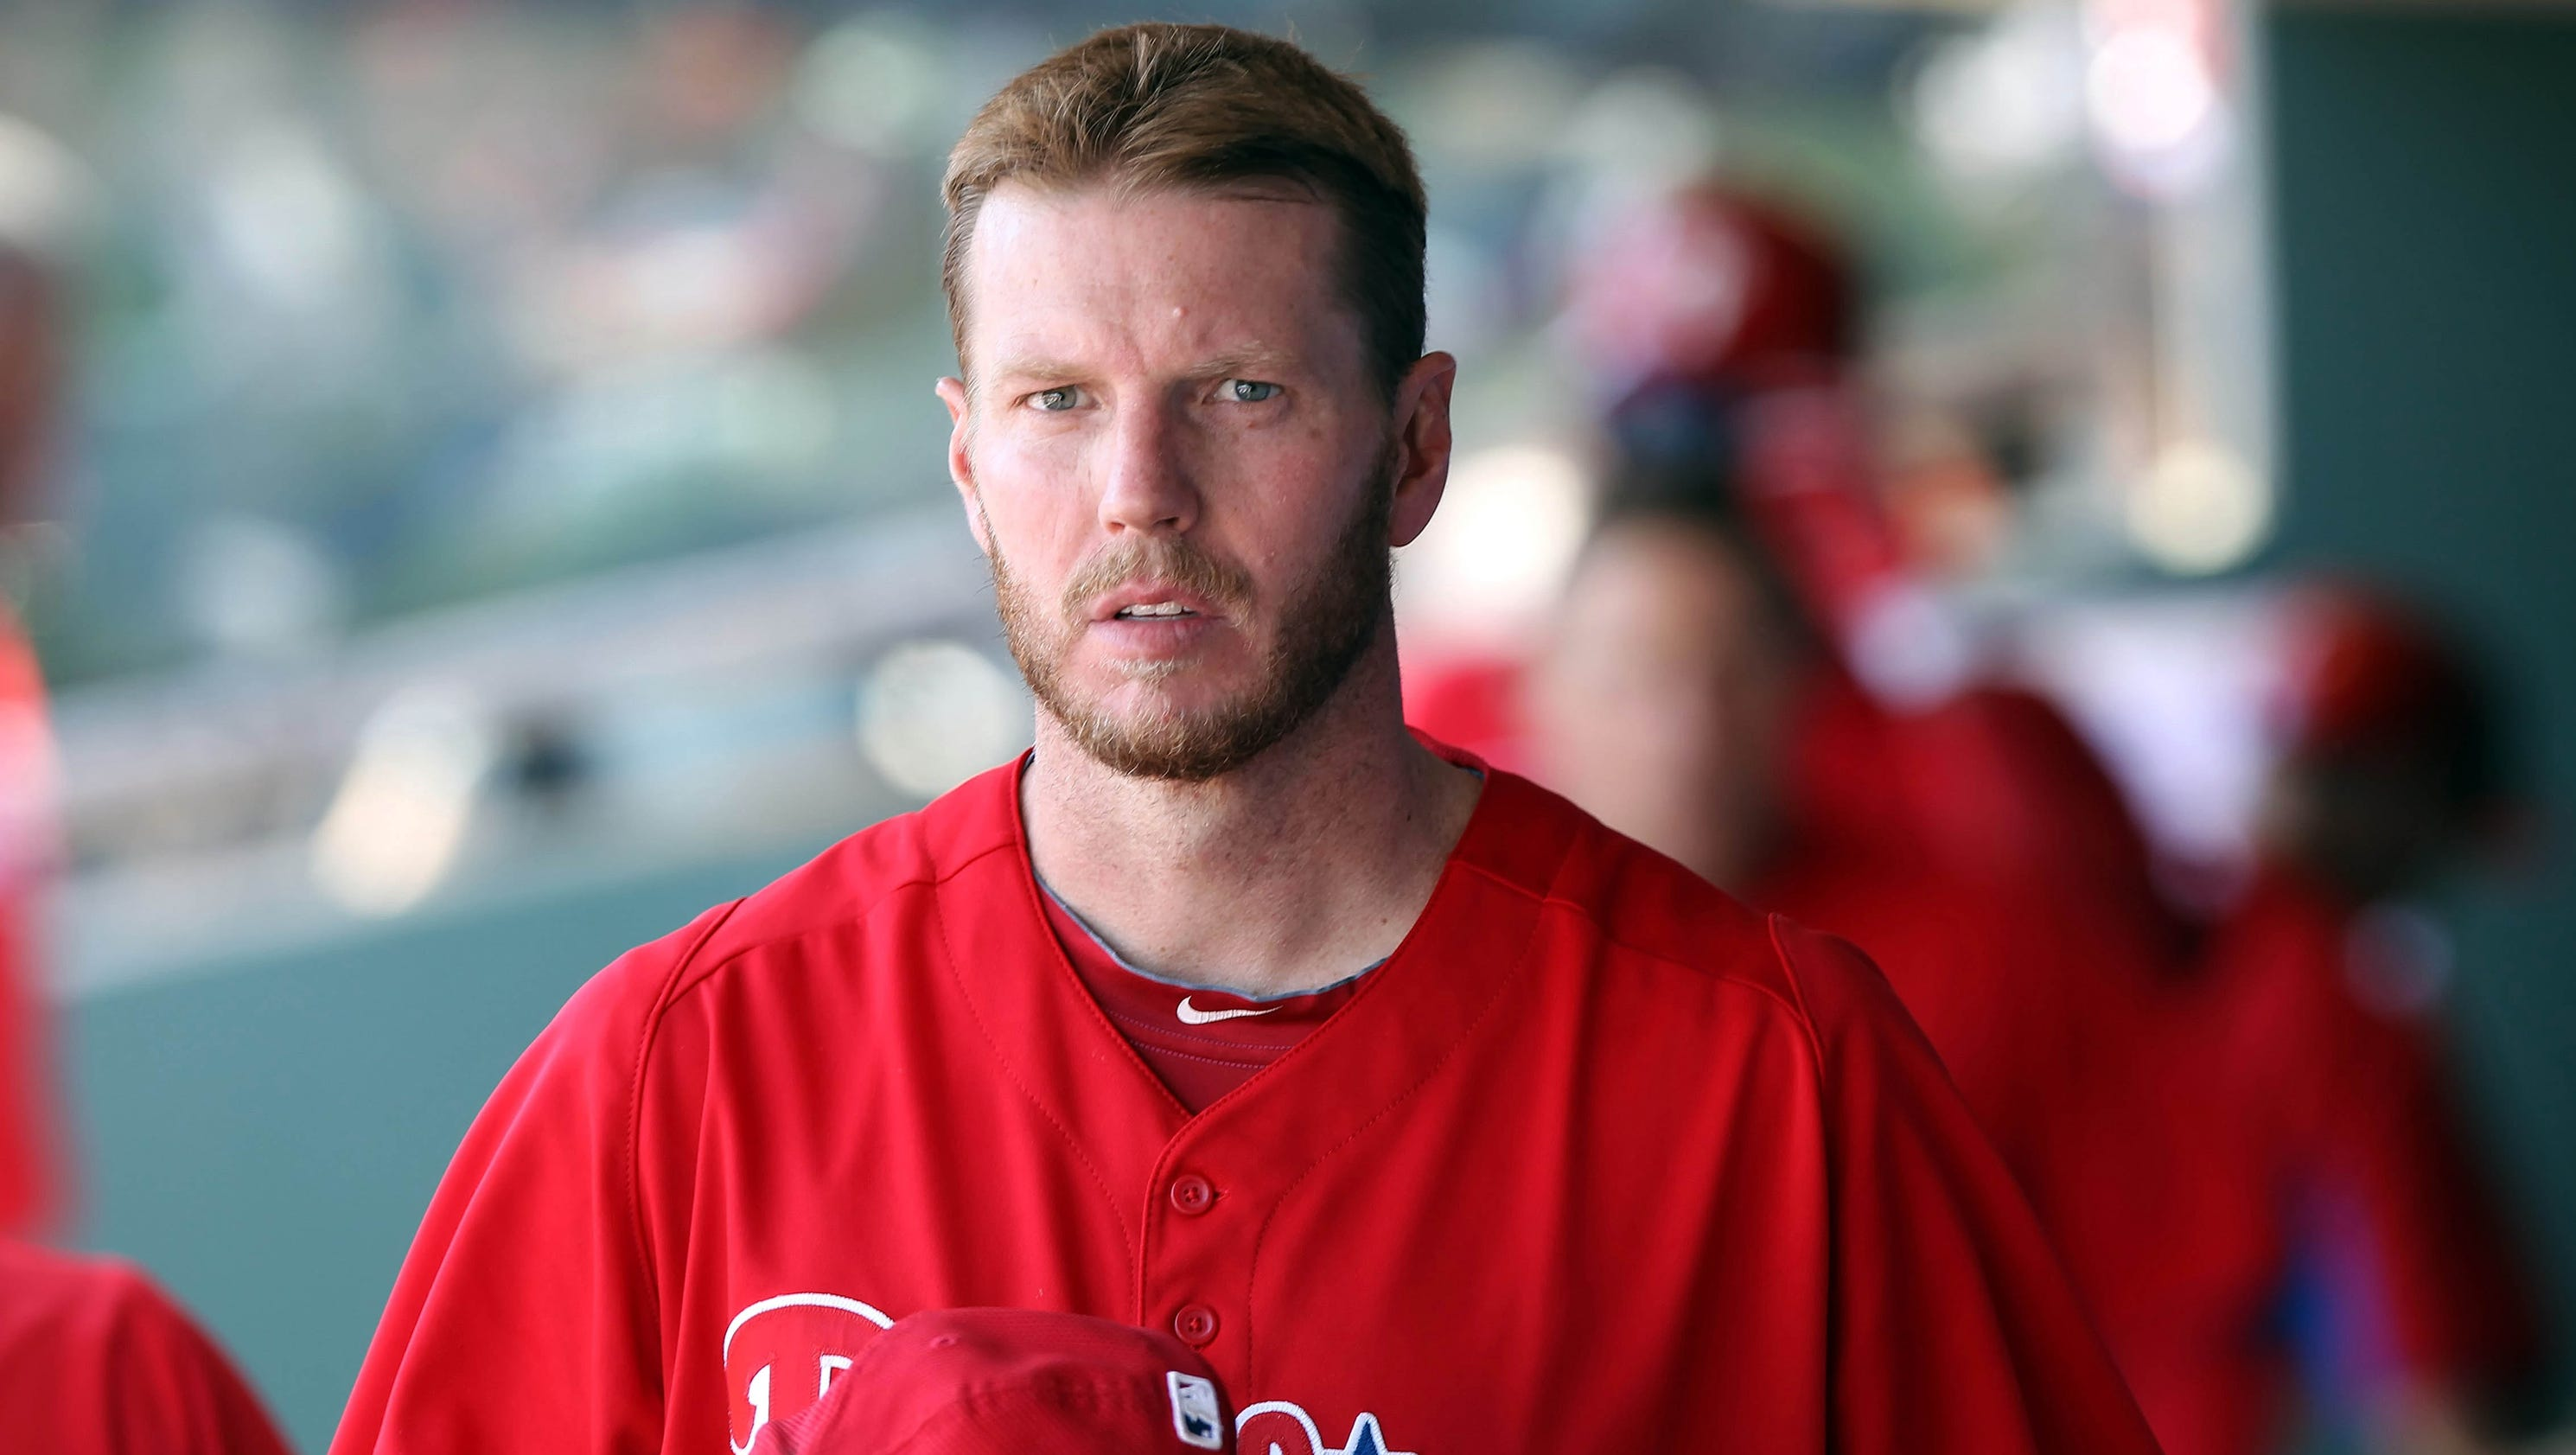 636468093779059134-sw01-halladay-a-0522